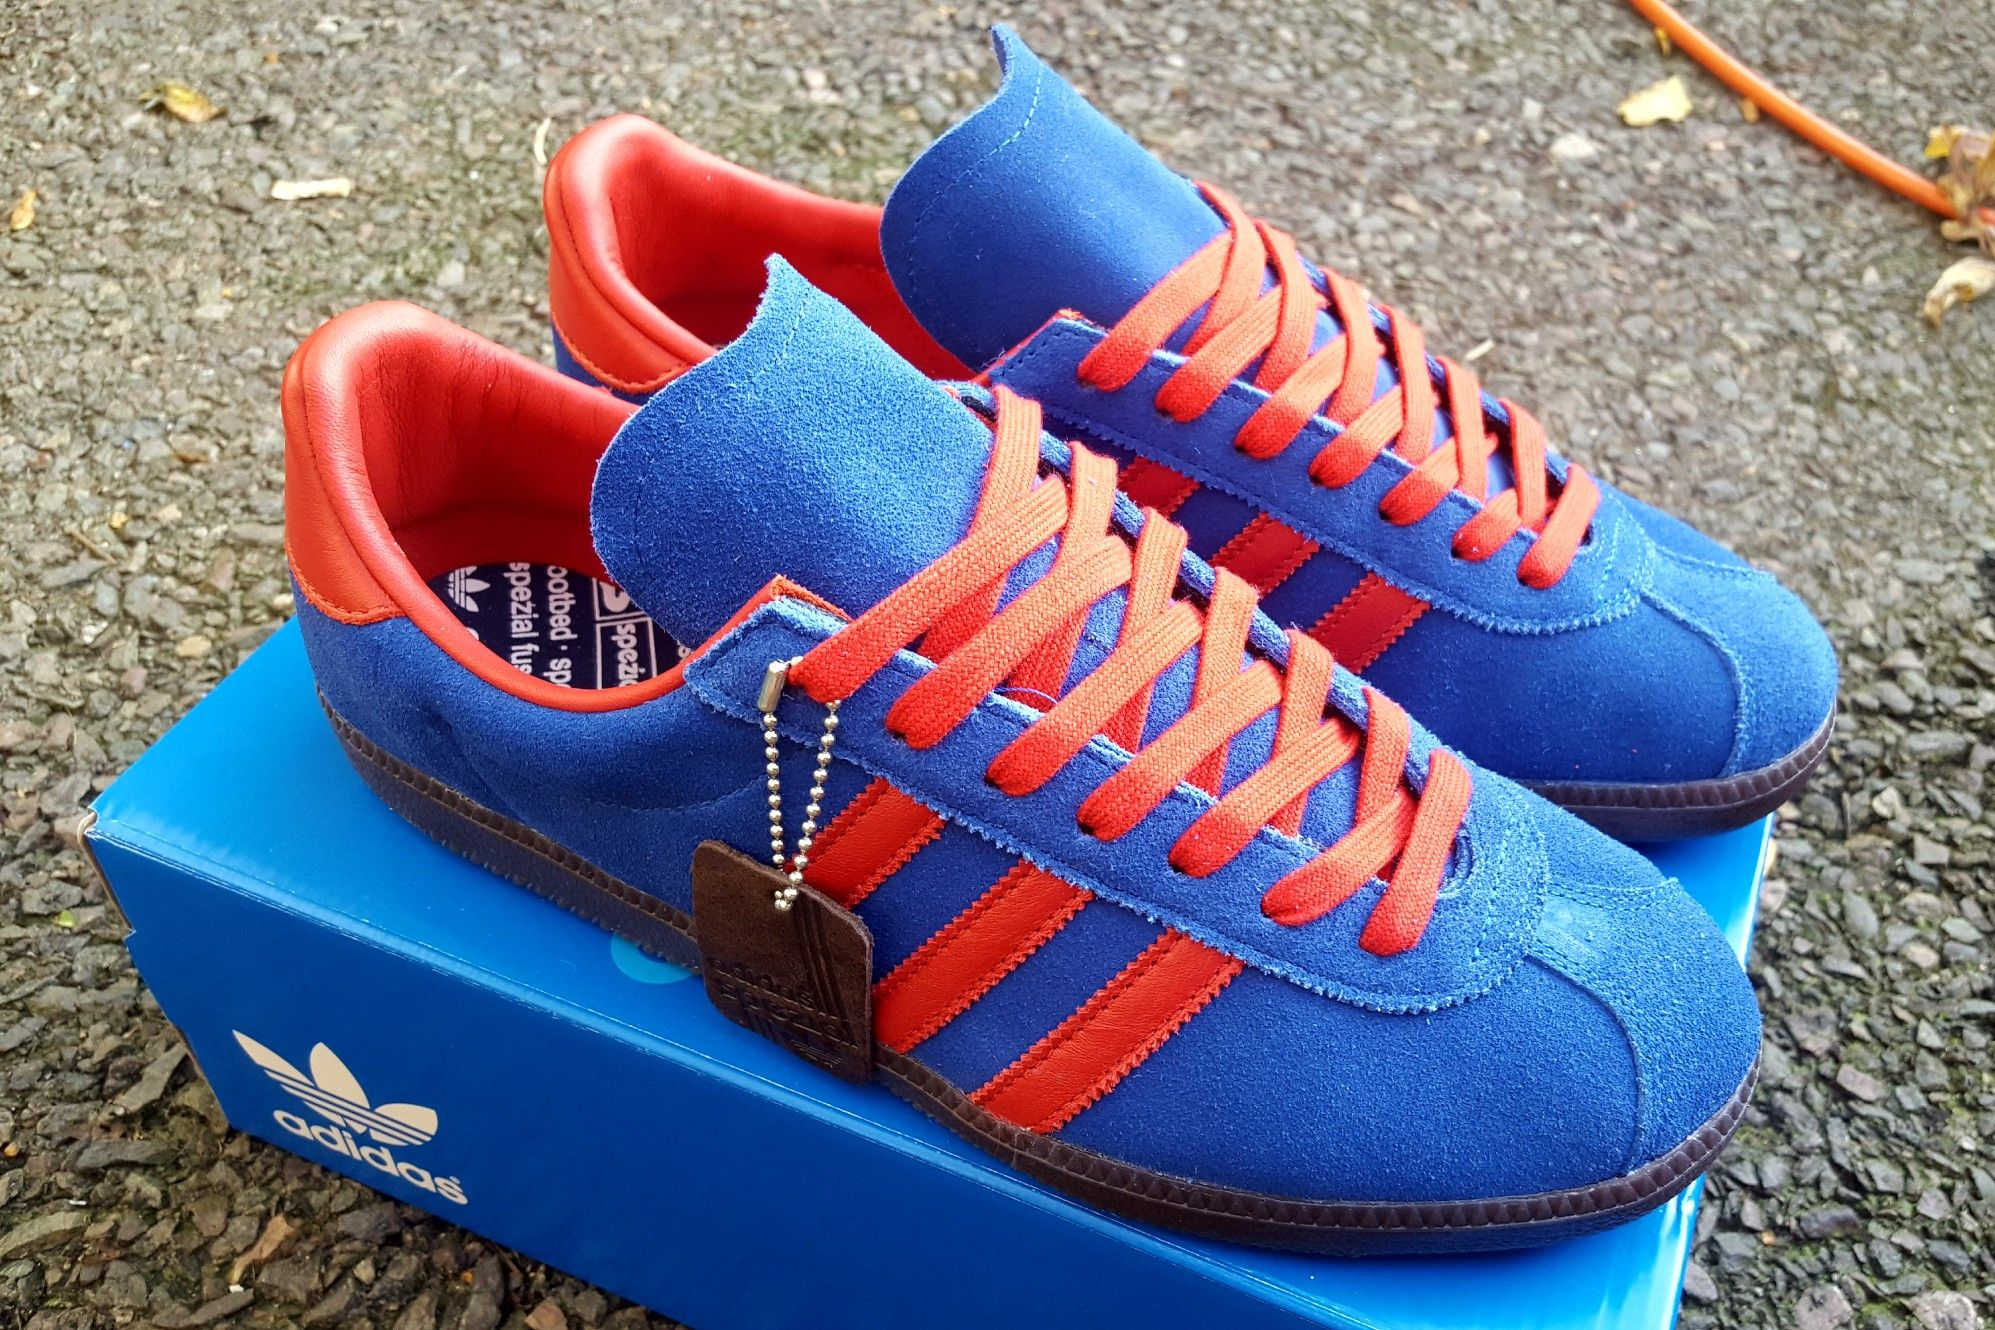 on sale 56ff0 58cb1 Adidas Spiritus Spezial 2017 look even better with the red laces   Sneakers    Pinterest   Red lace, Adidas and Clothing